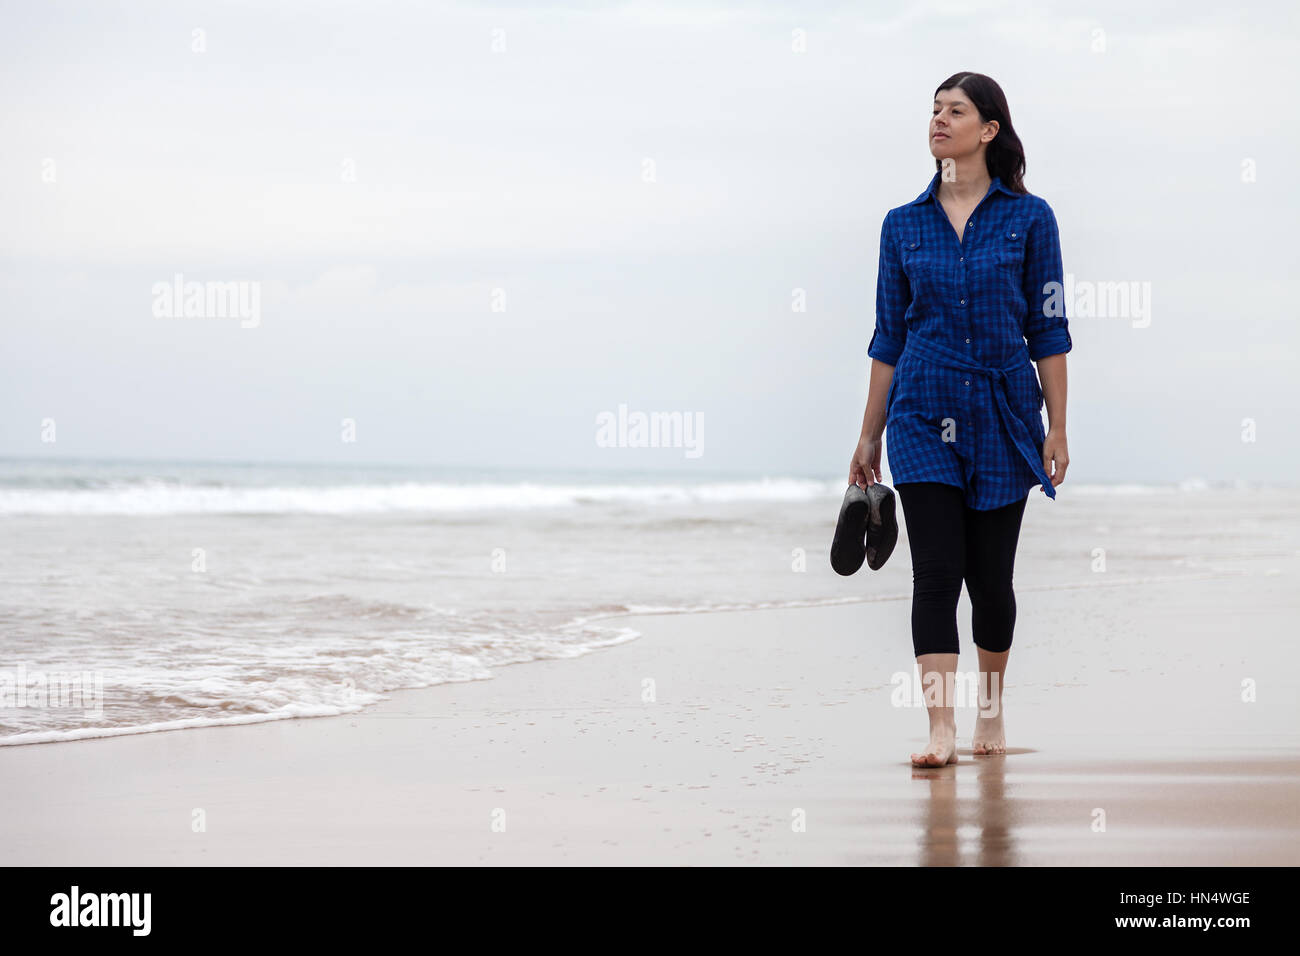 Young woman walking alone in a deserted beach on an Autumn day /  woman beach walking alone lonely sad sadness depression - Stock Image